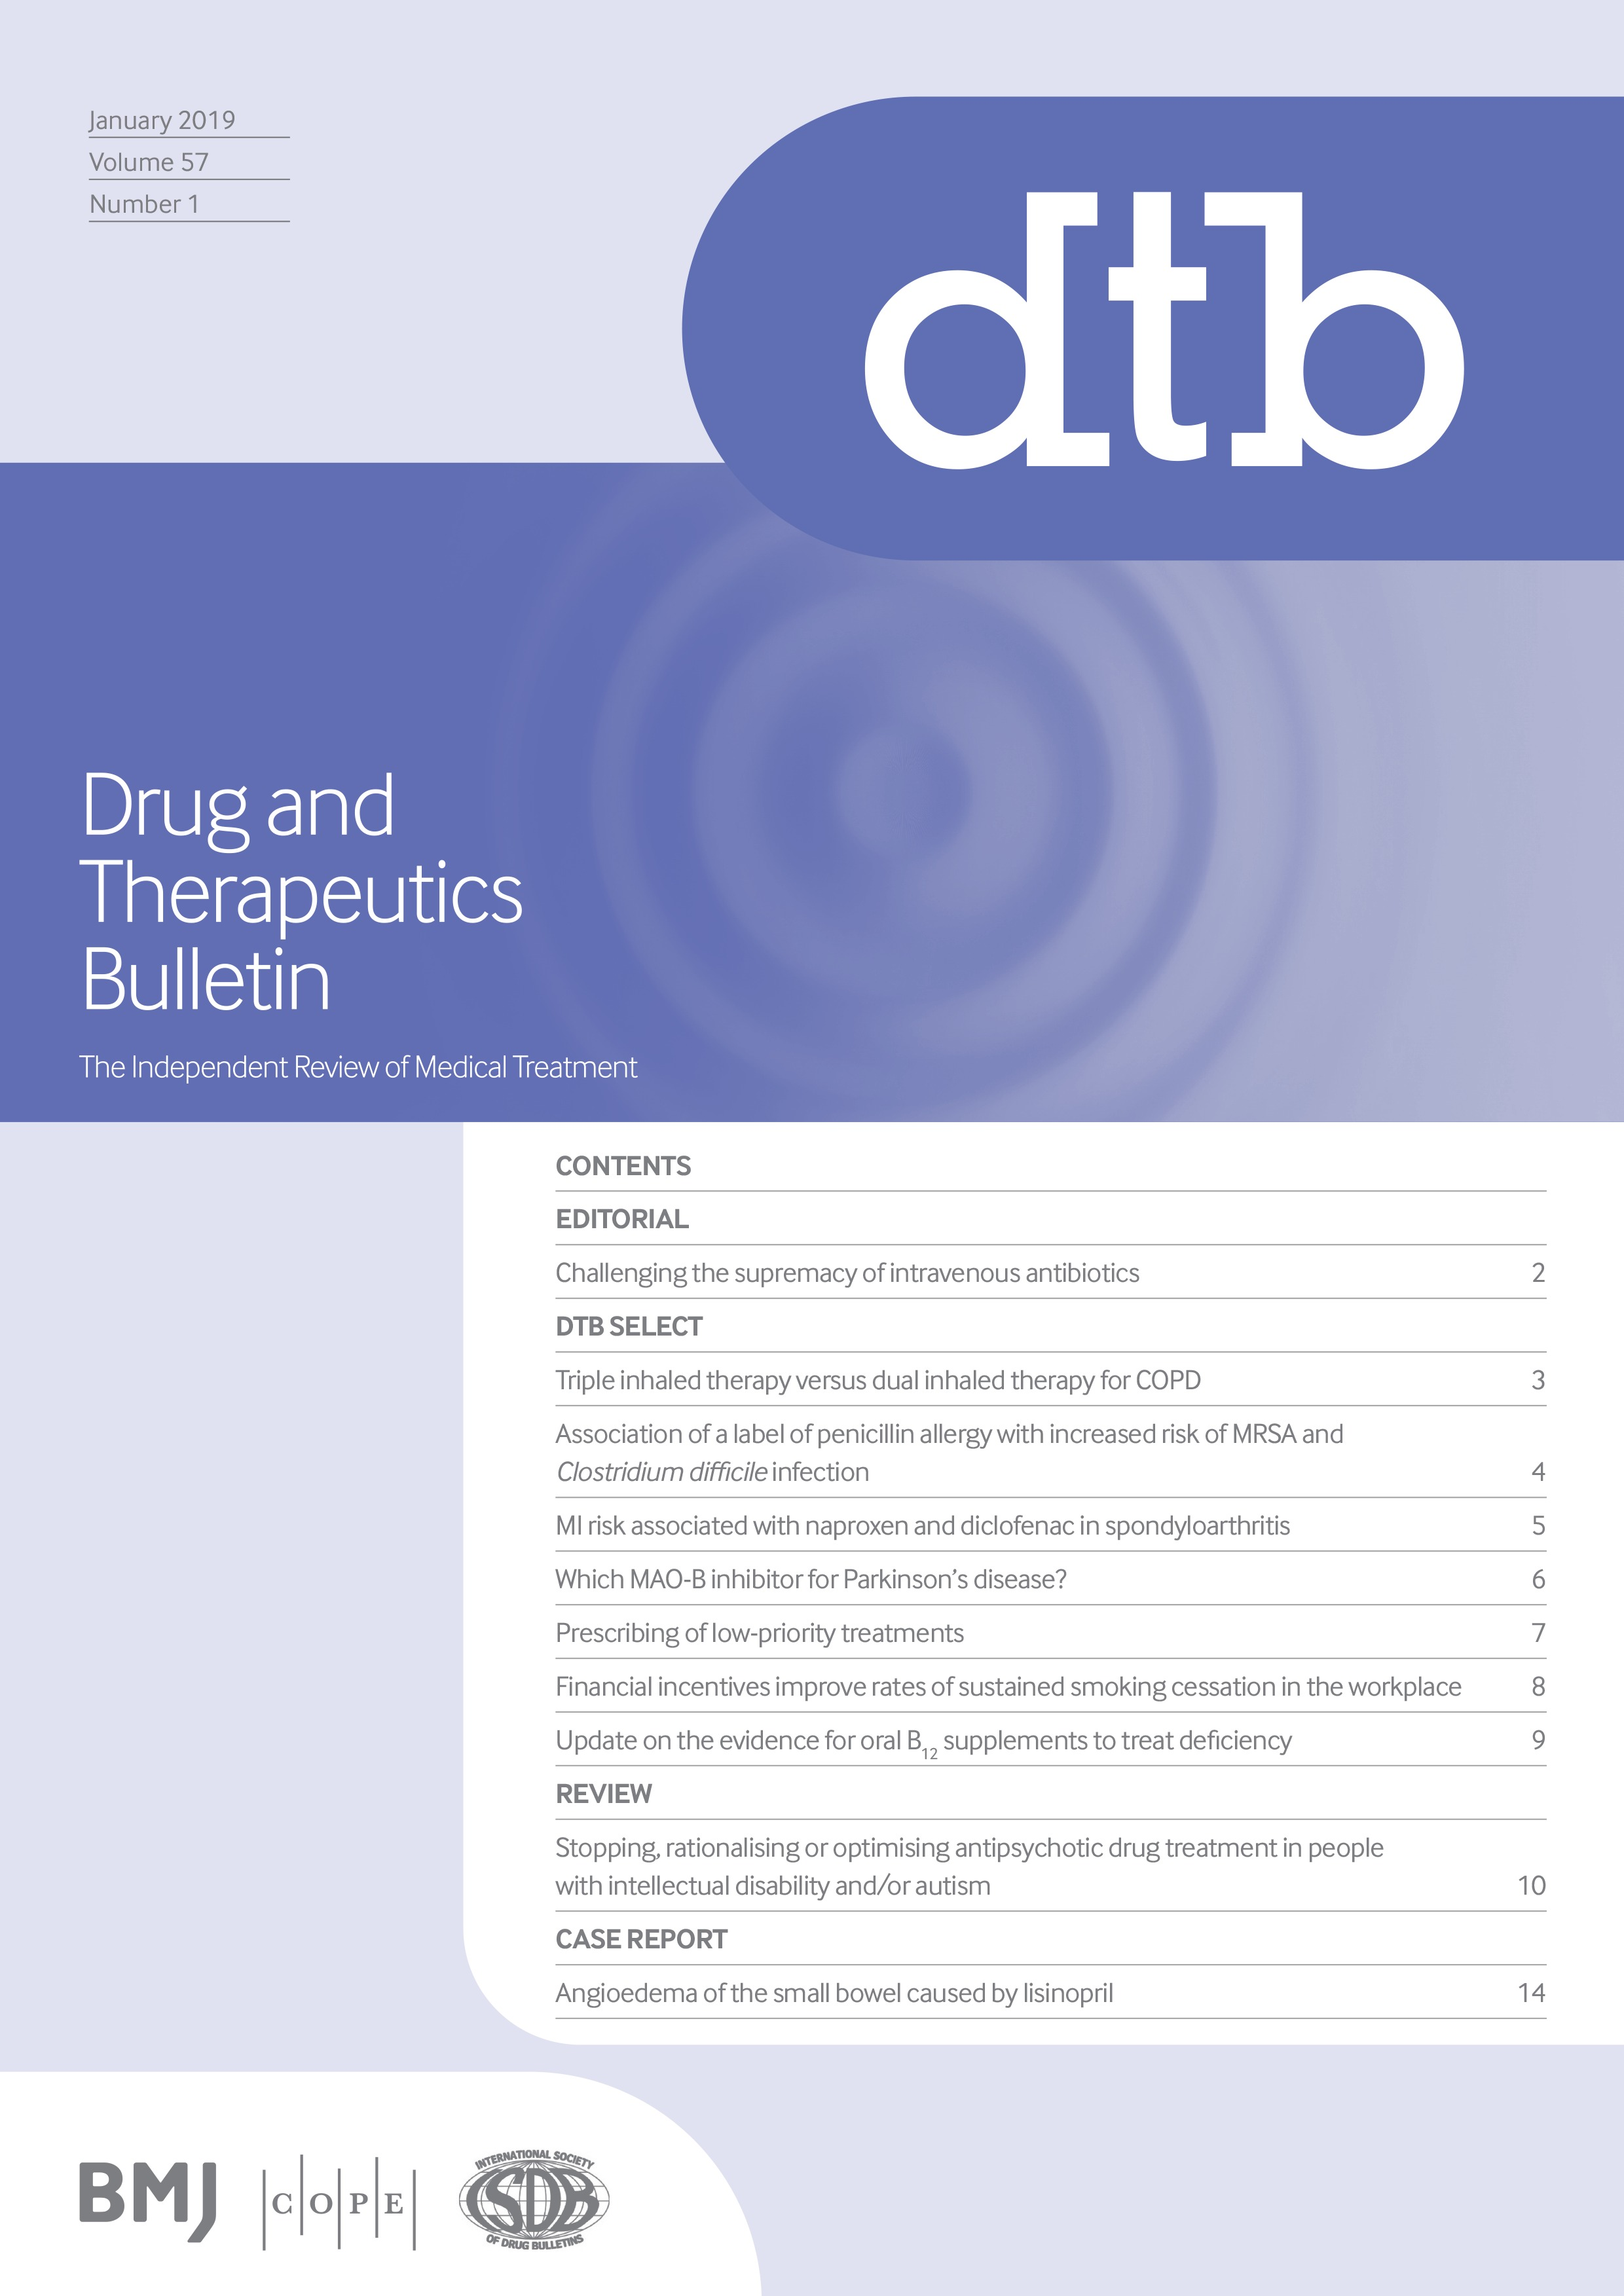 Which MAO-B inhibitor for Parkinson's disease? | Drug and